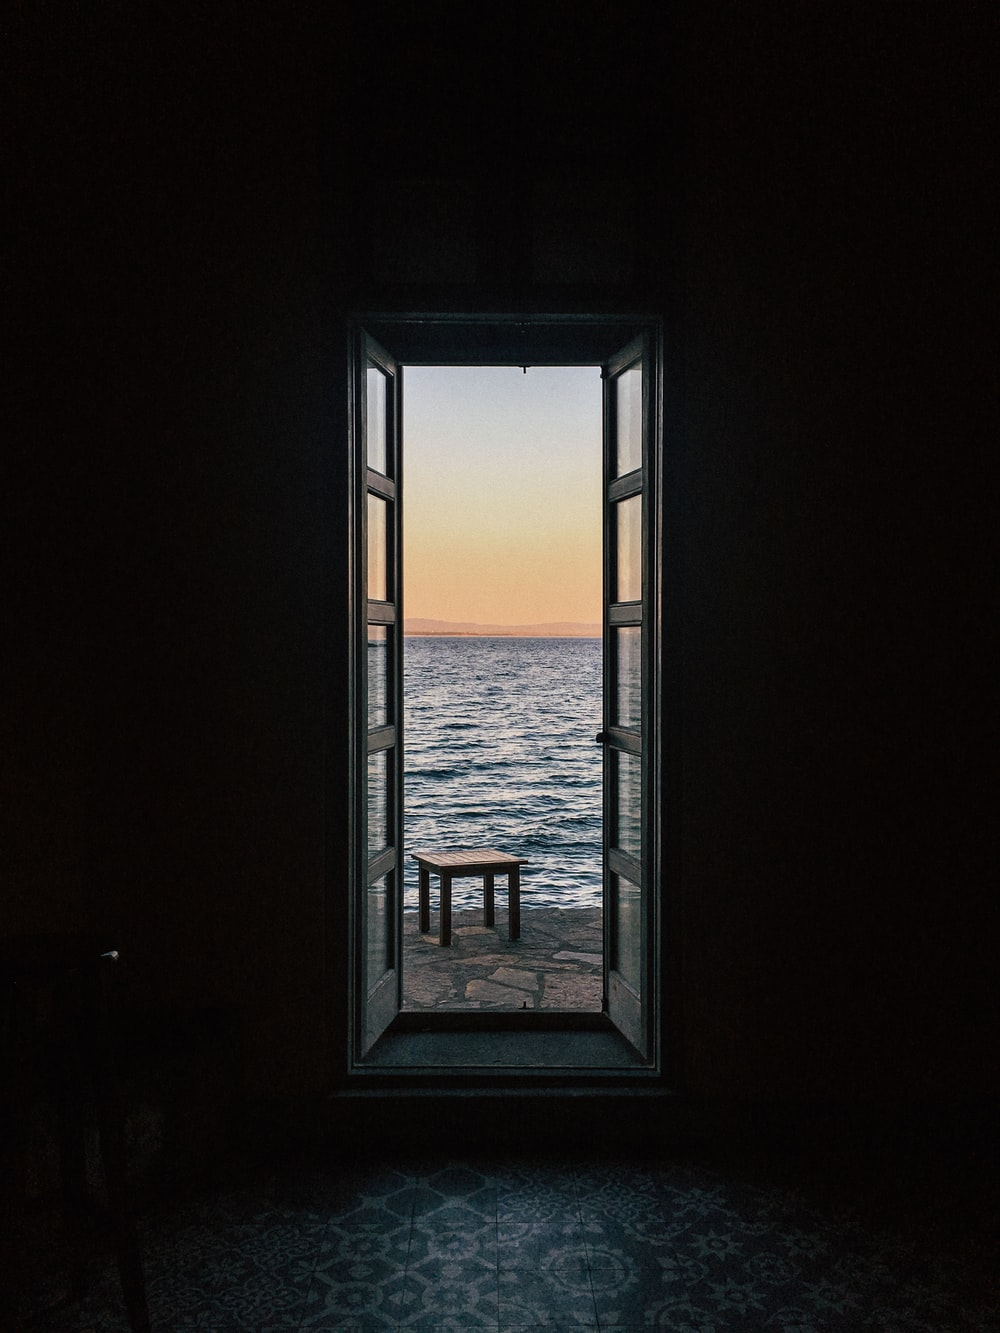 table near body of water